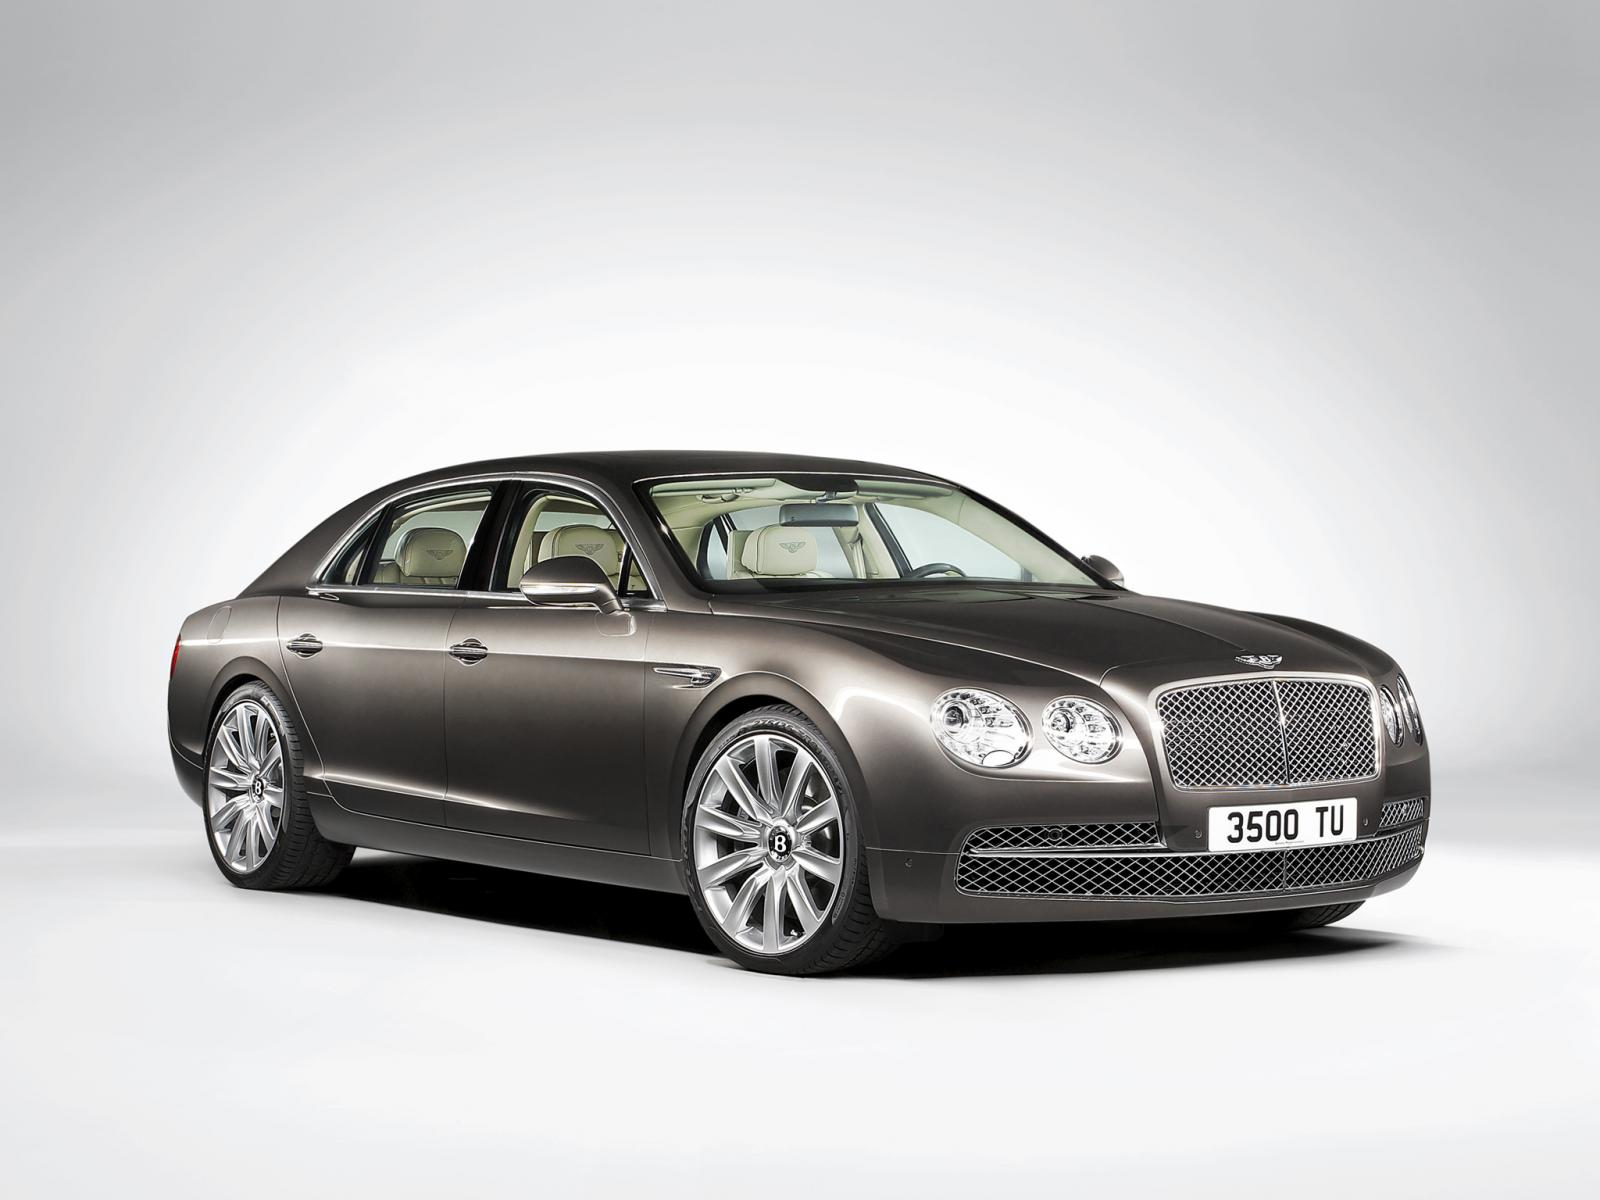 2013 Bentley Continental Flying Spur #1